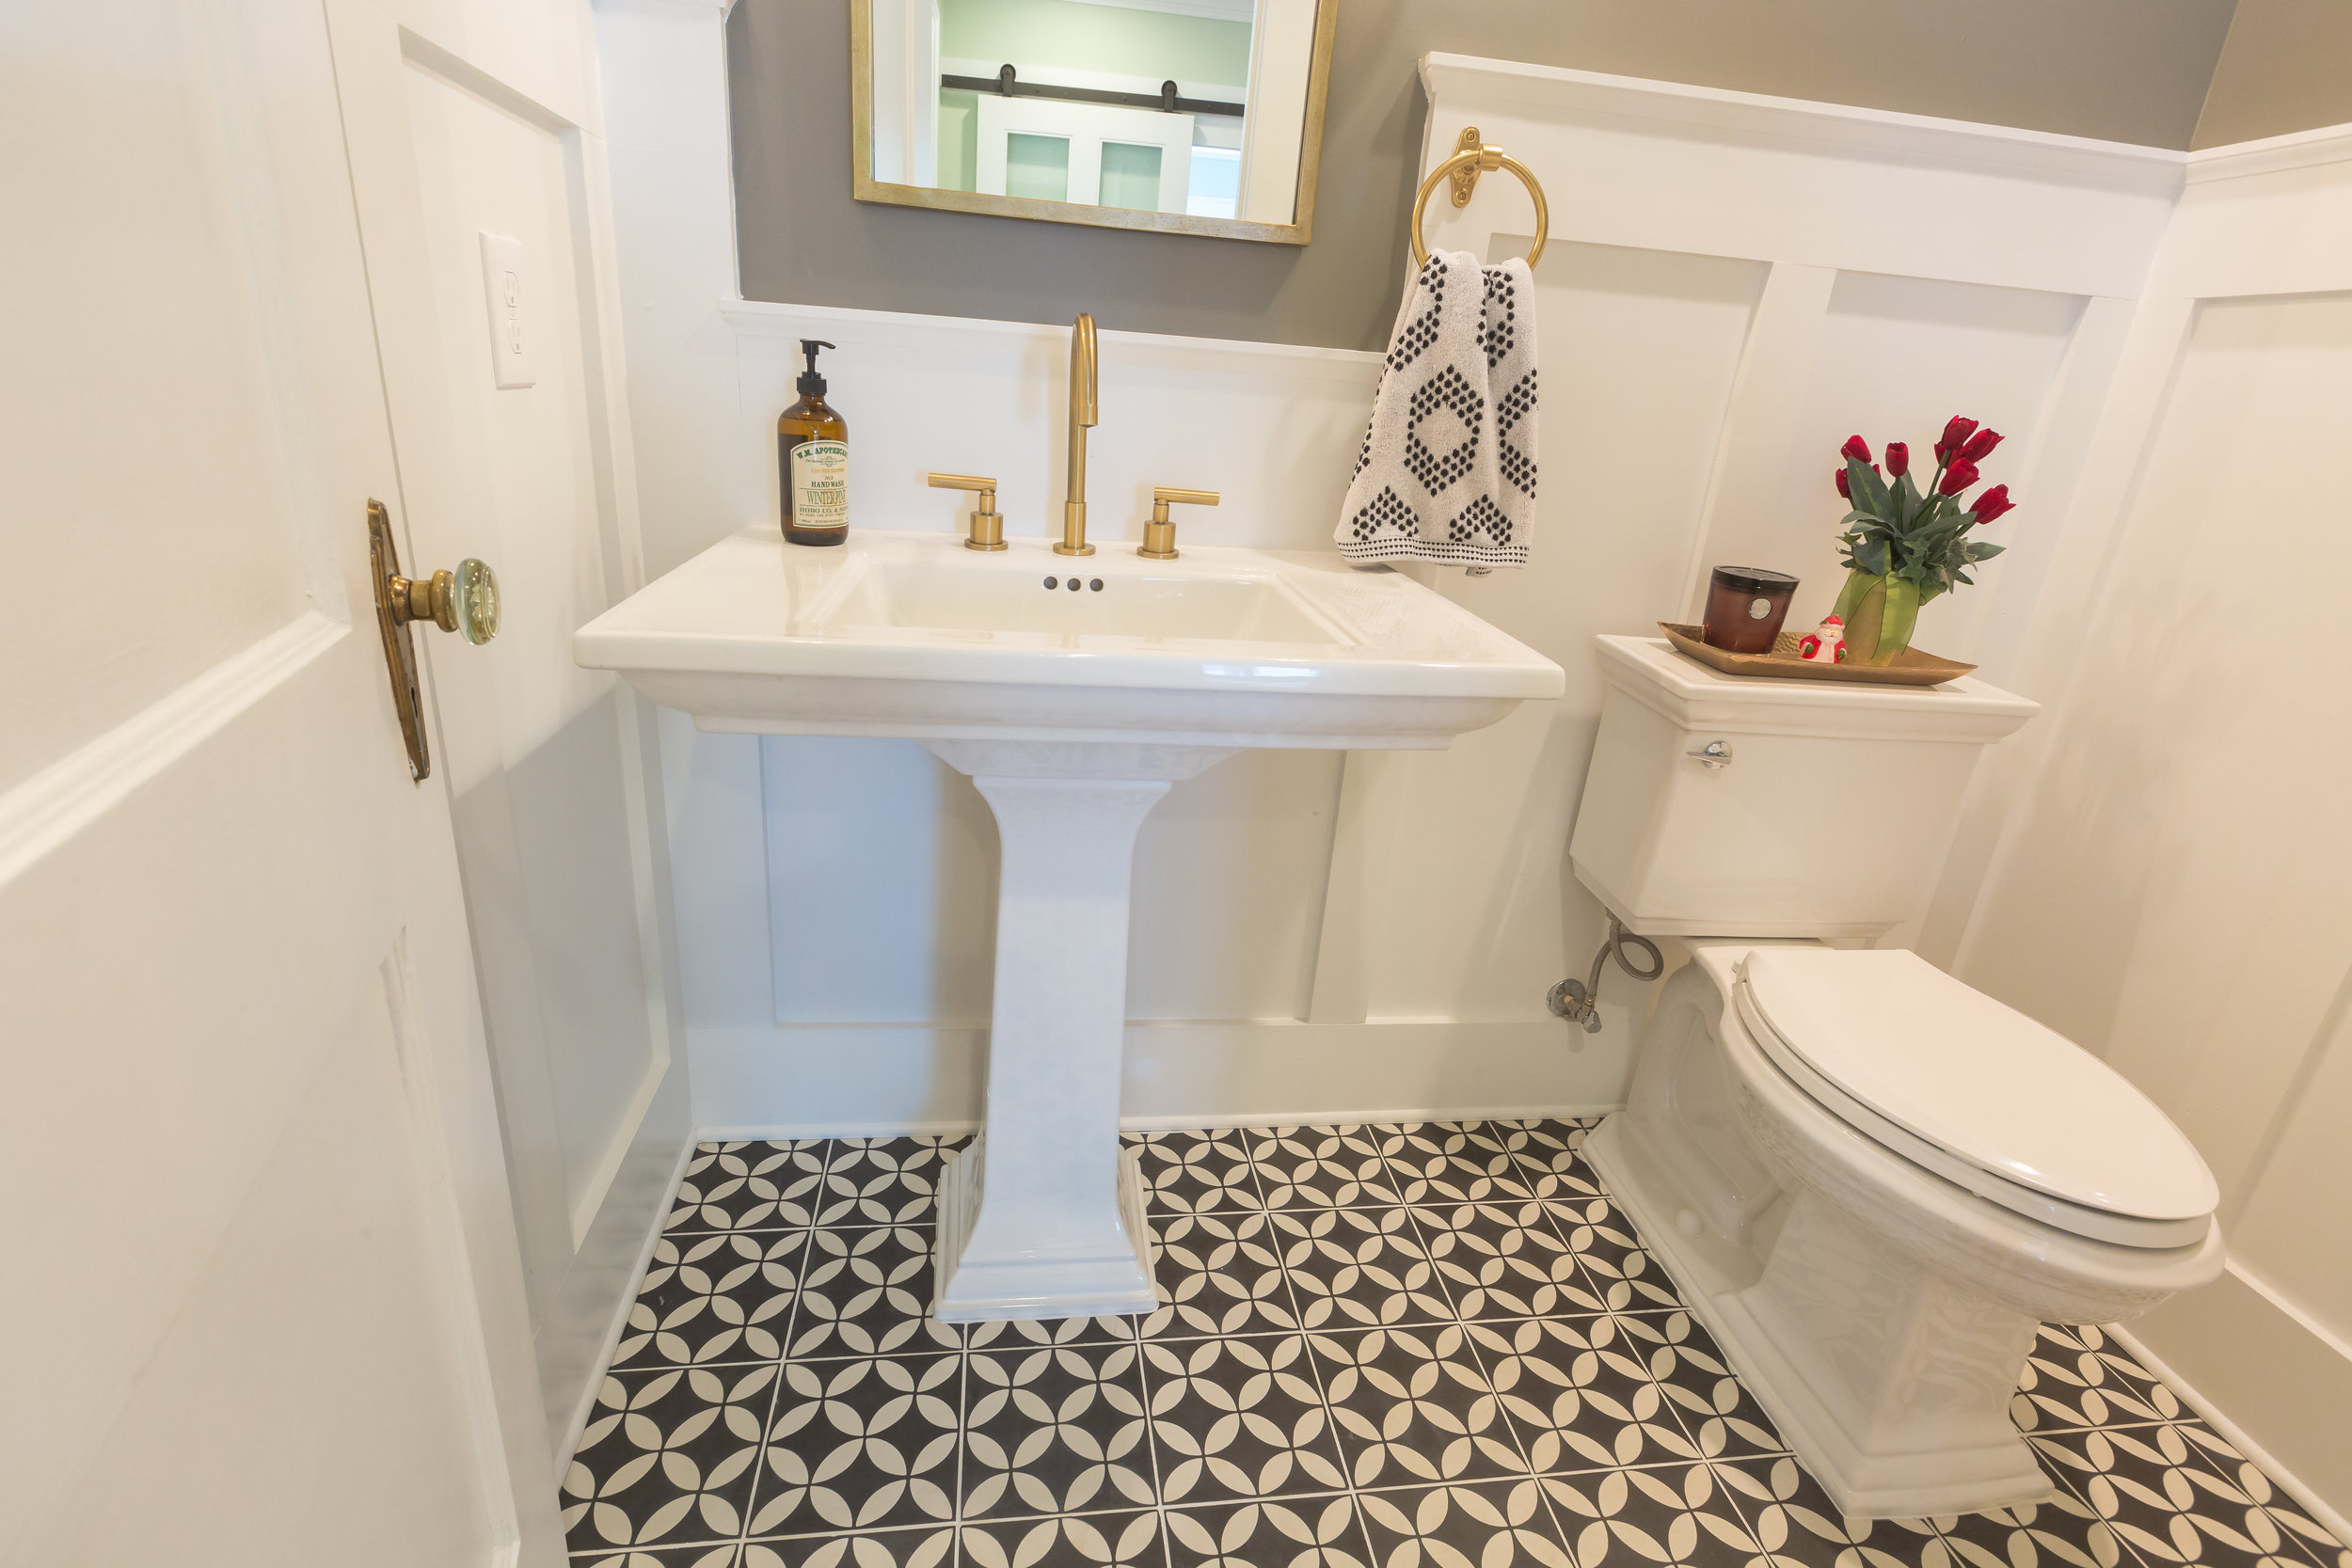 Vintage patterned tile makes this powder room seem larger. Perfectly paired with the pedestal sink and classic brass faucet.